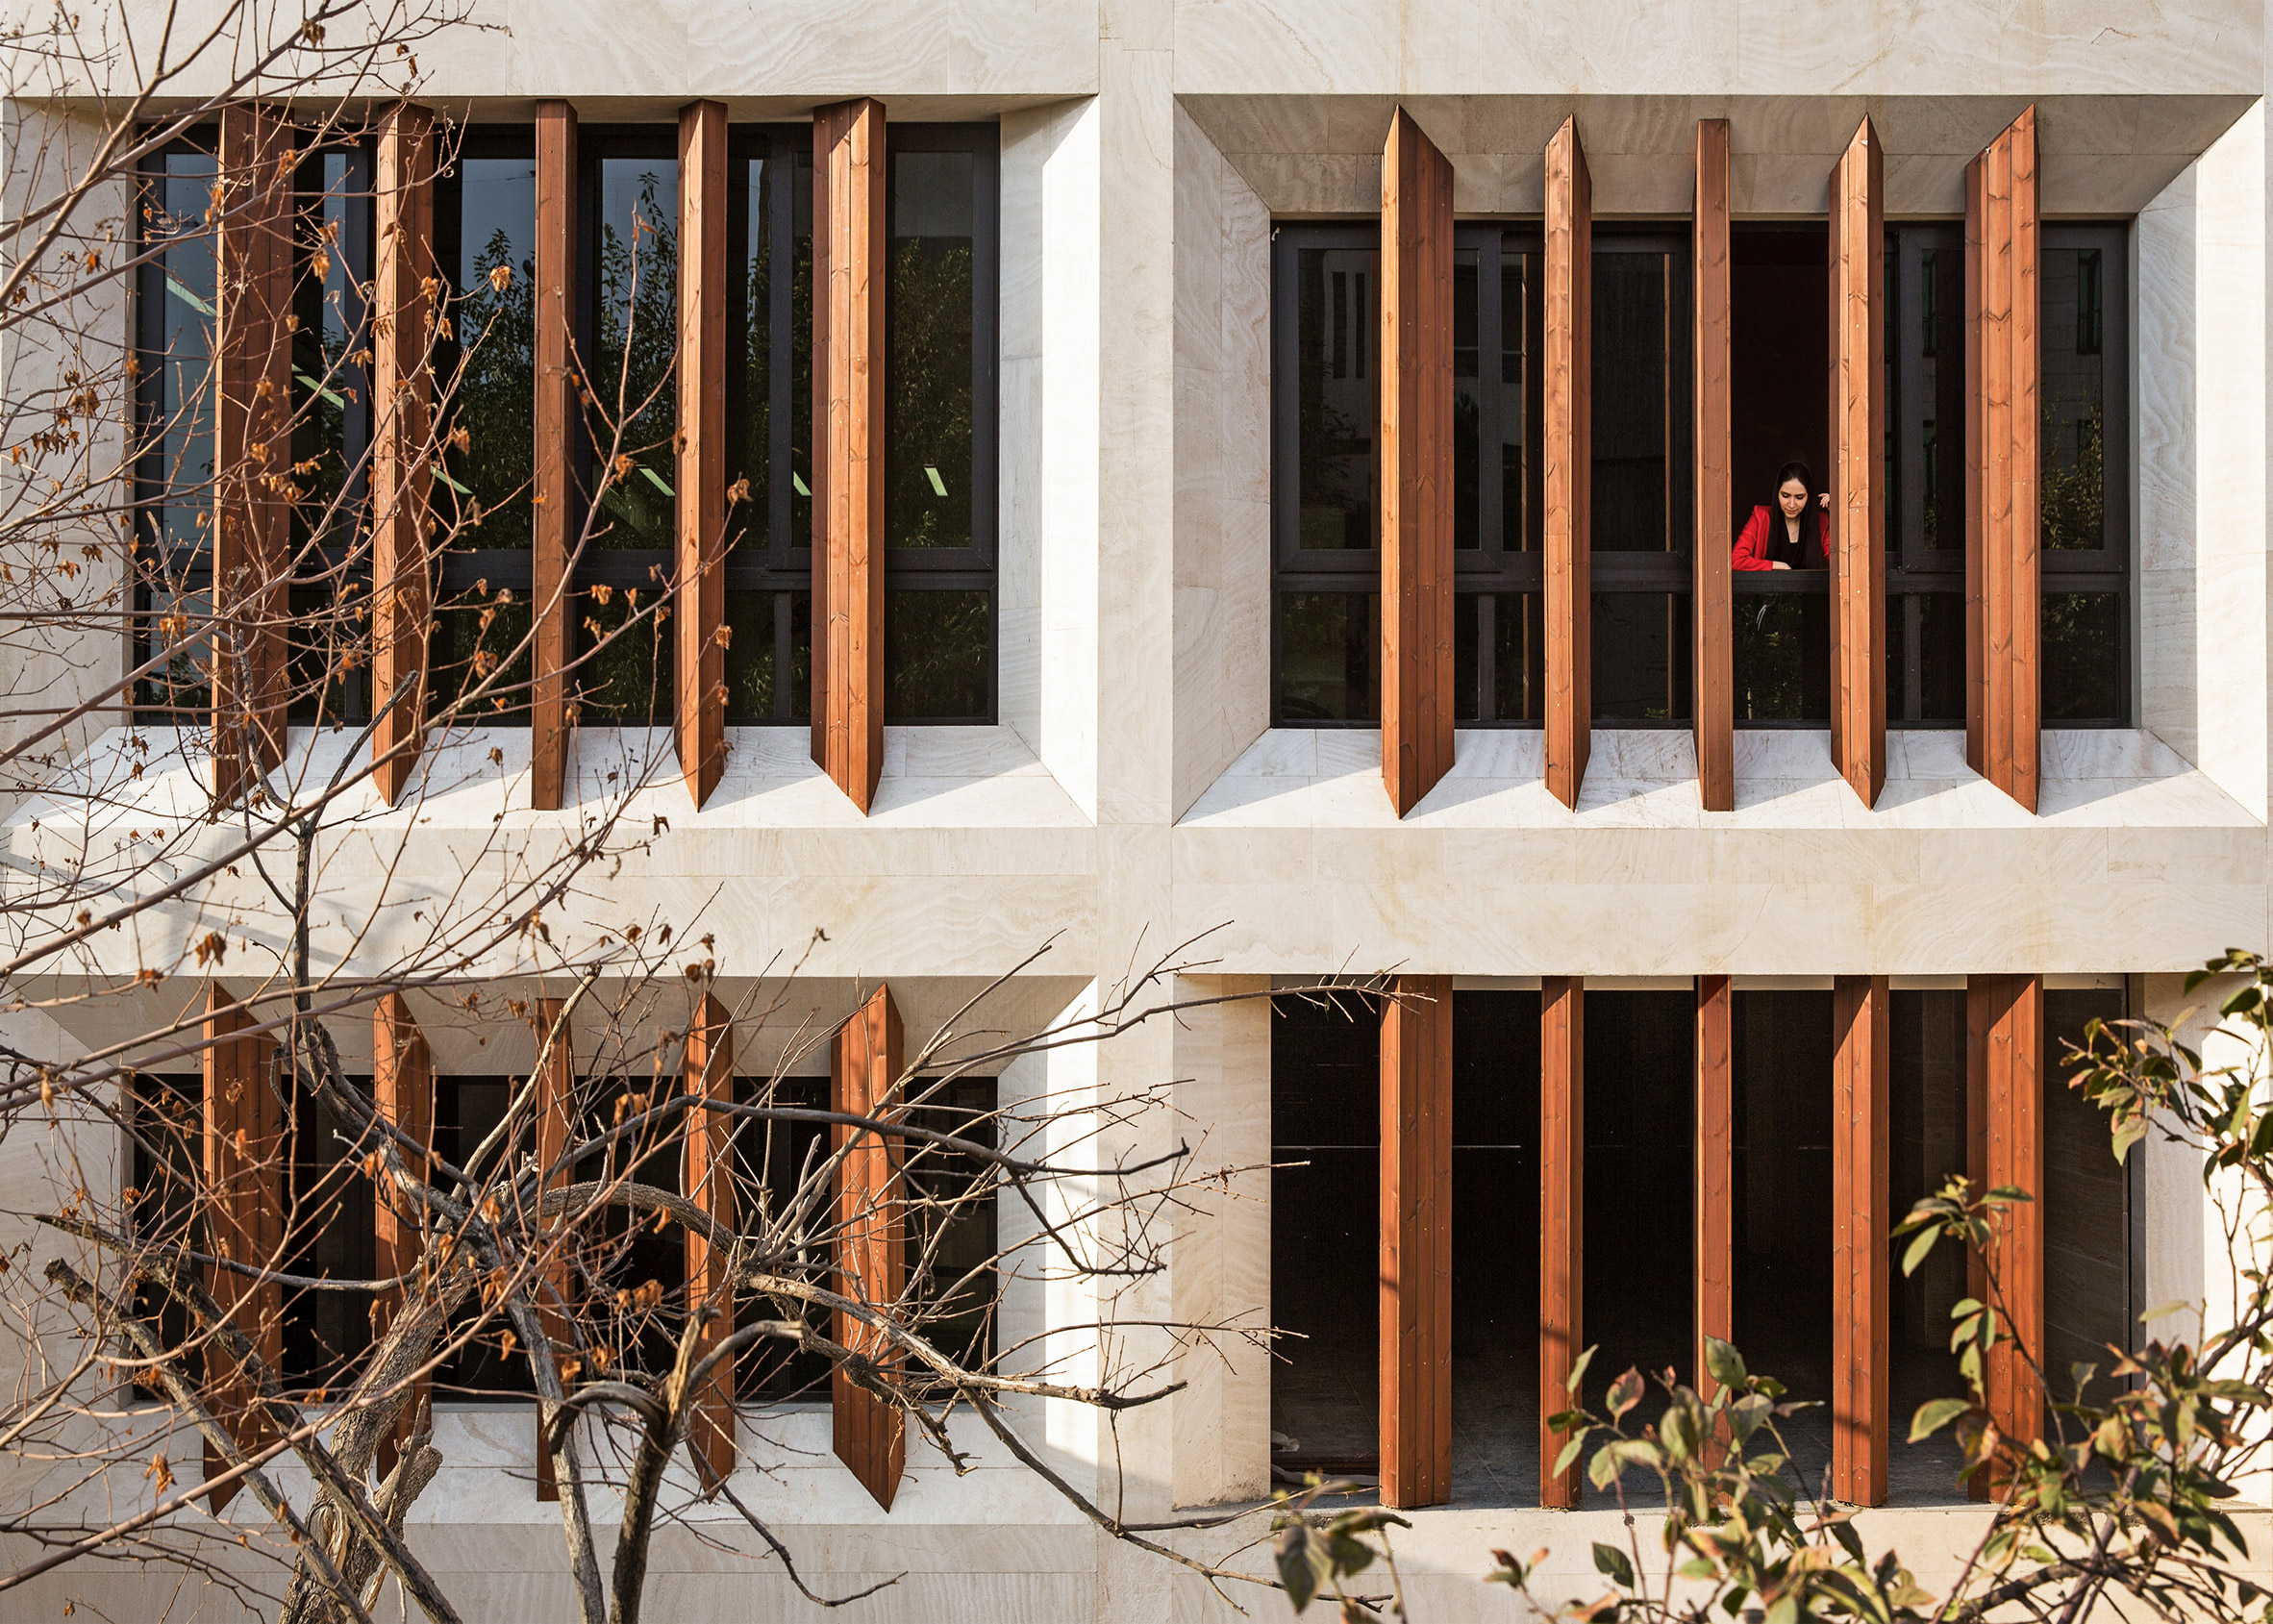 Tehran office building features facade divided into a grid of faceted window frames